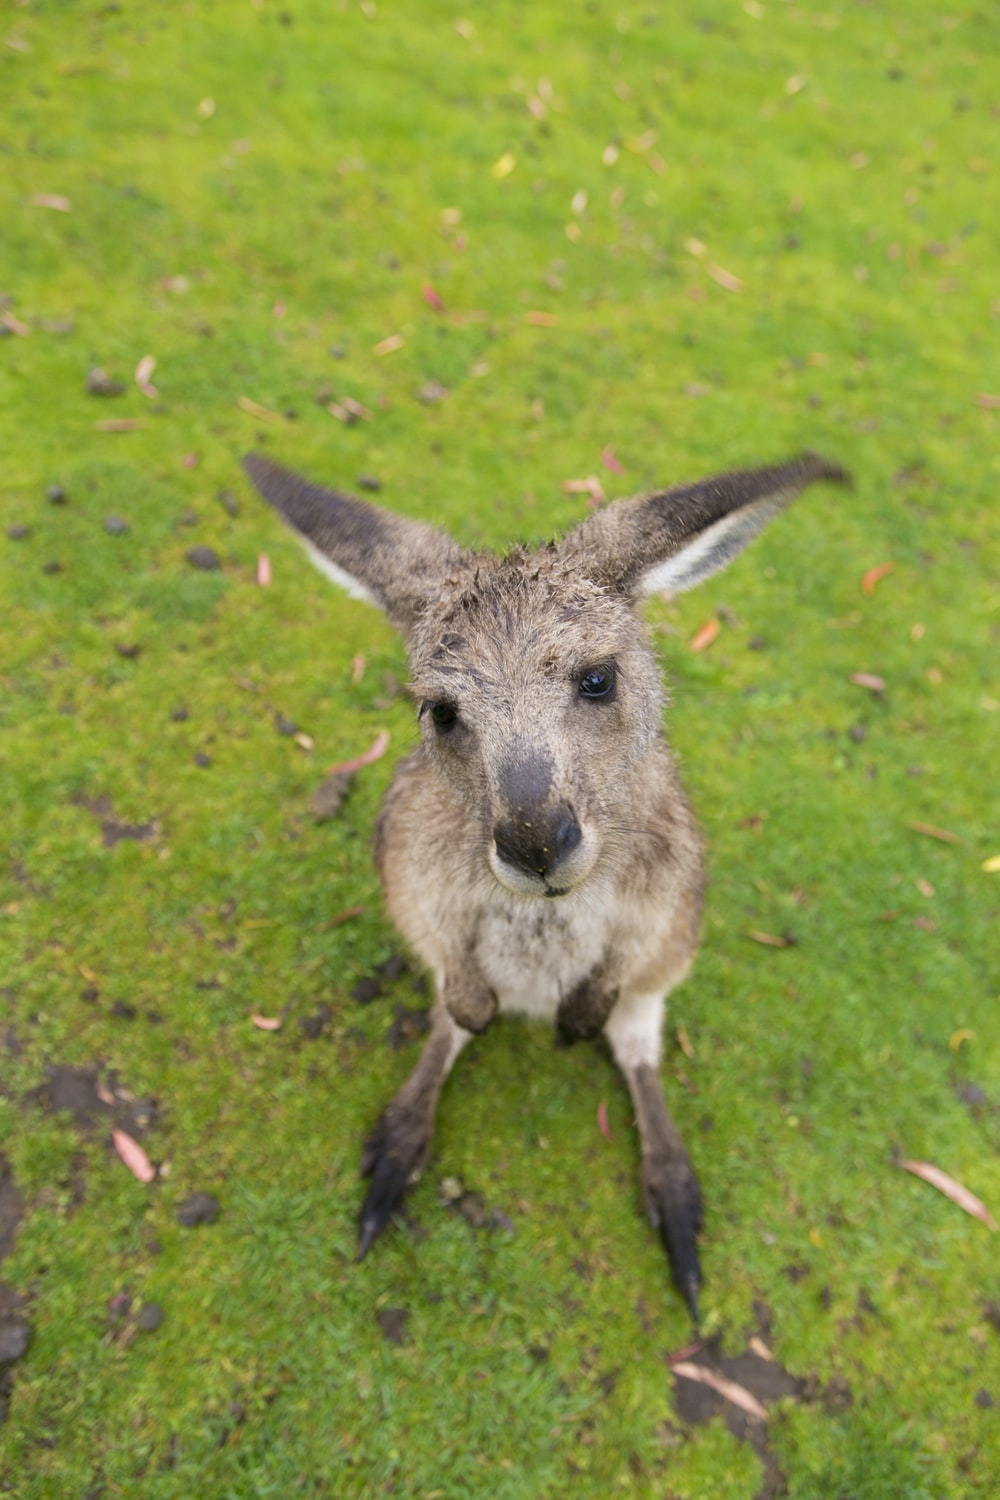 brown kangaroo joey on grass